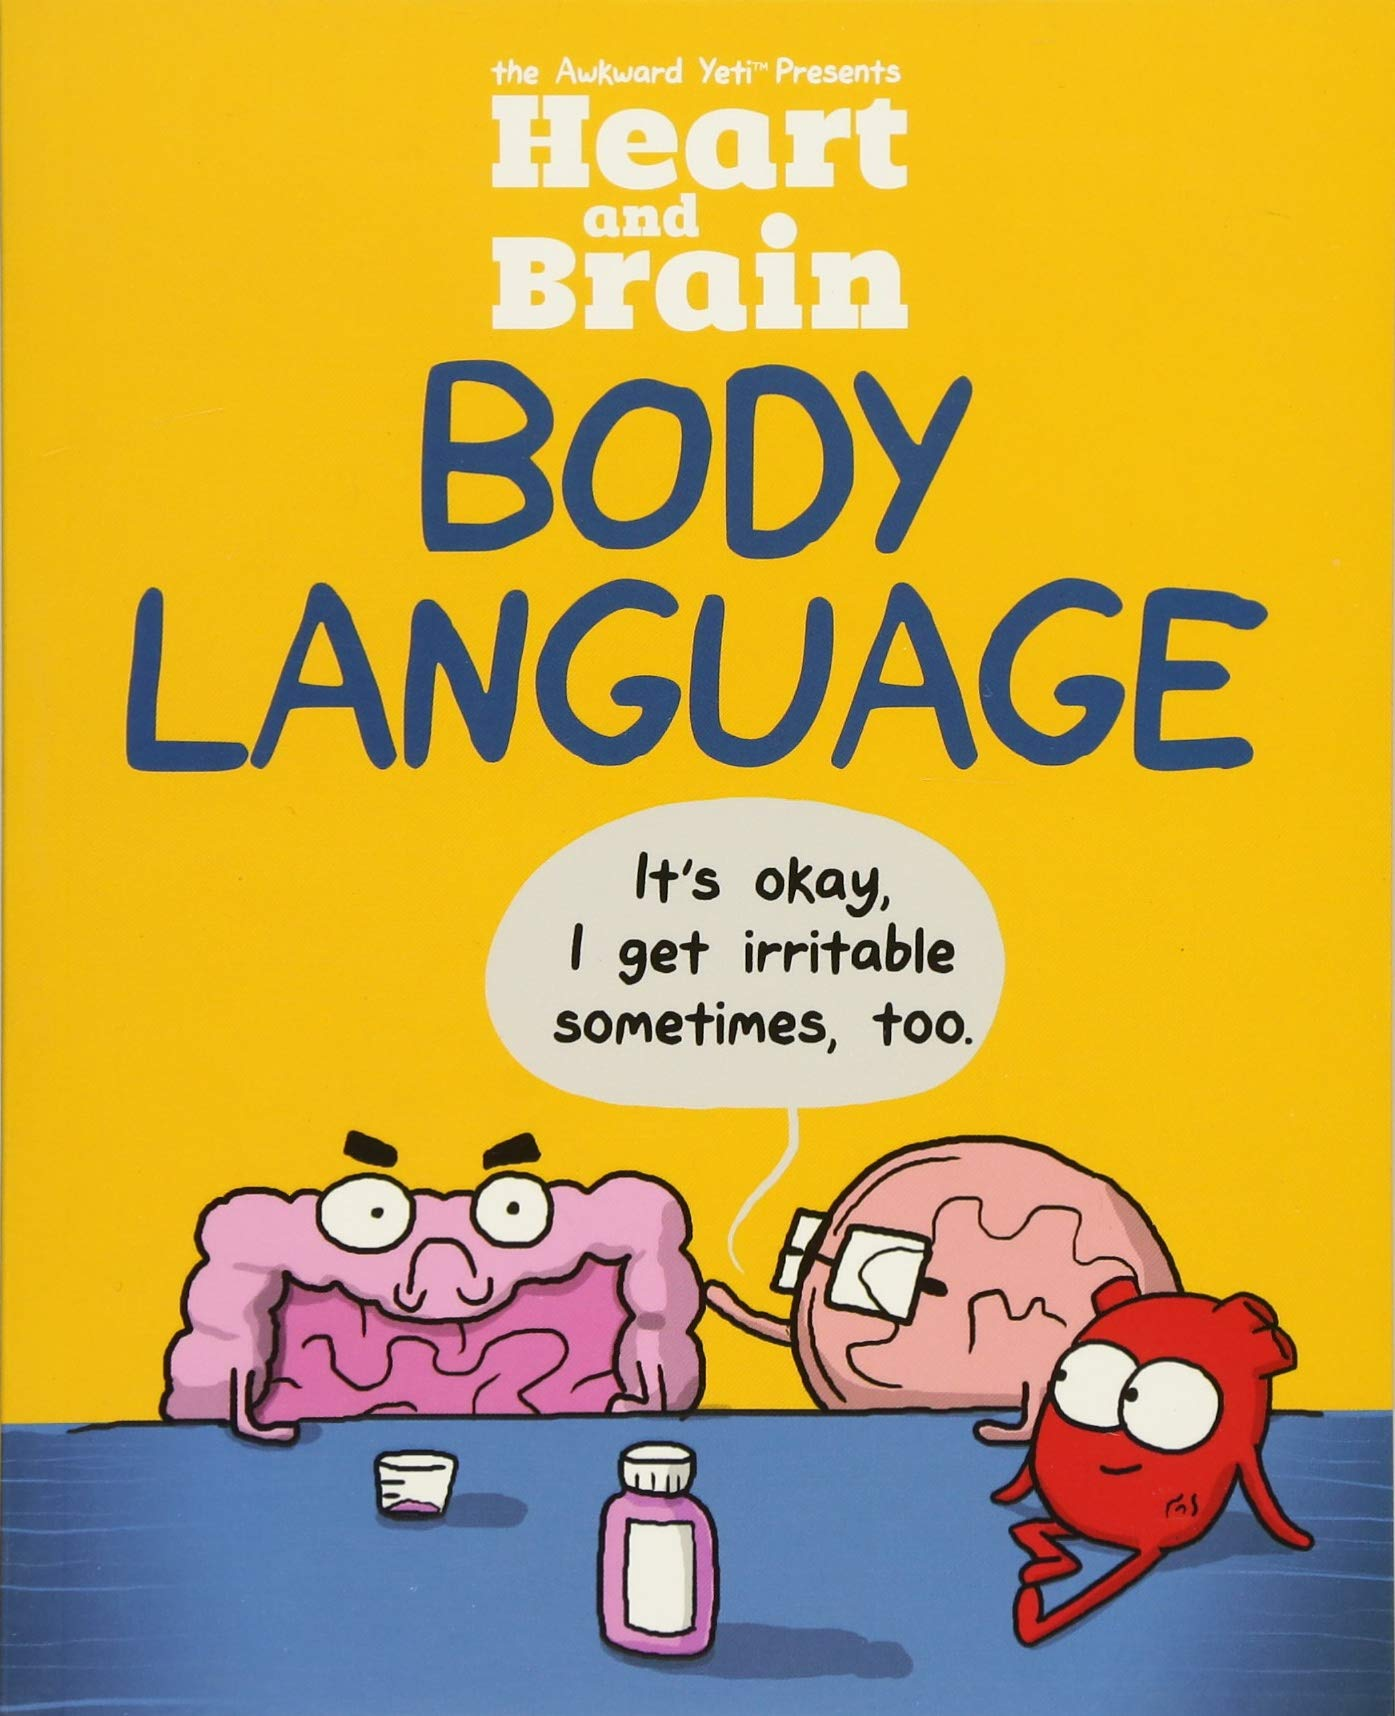 Heart and Brain: Body Language: An Awkward Yeti Collection by Andrews McMeel Publishing